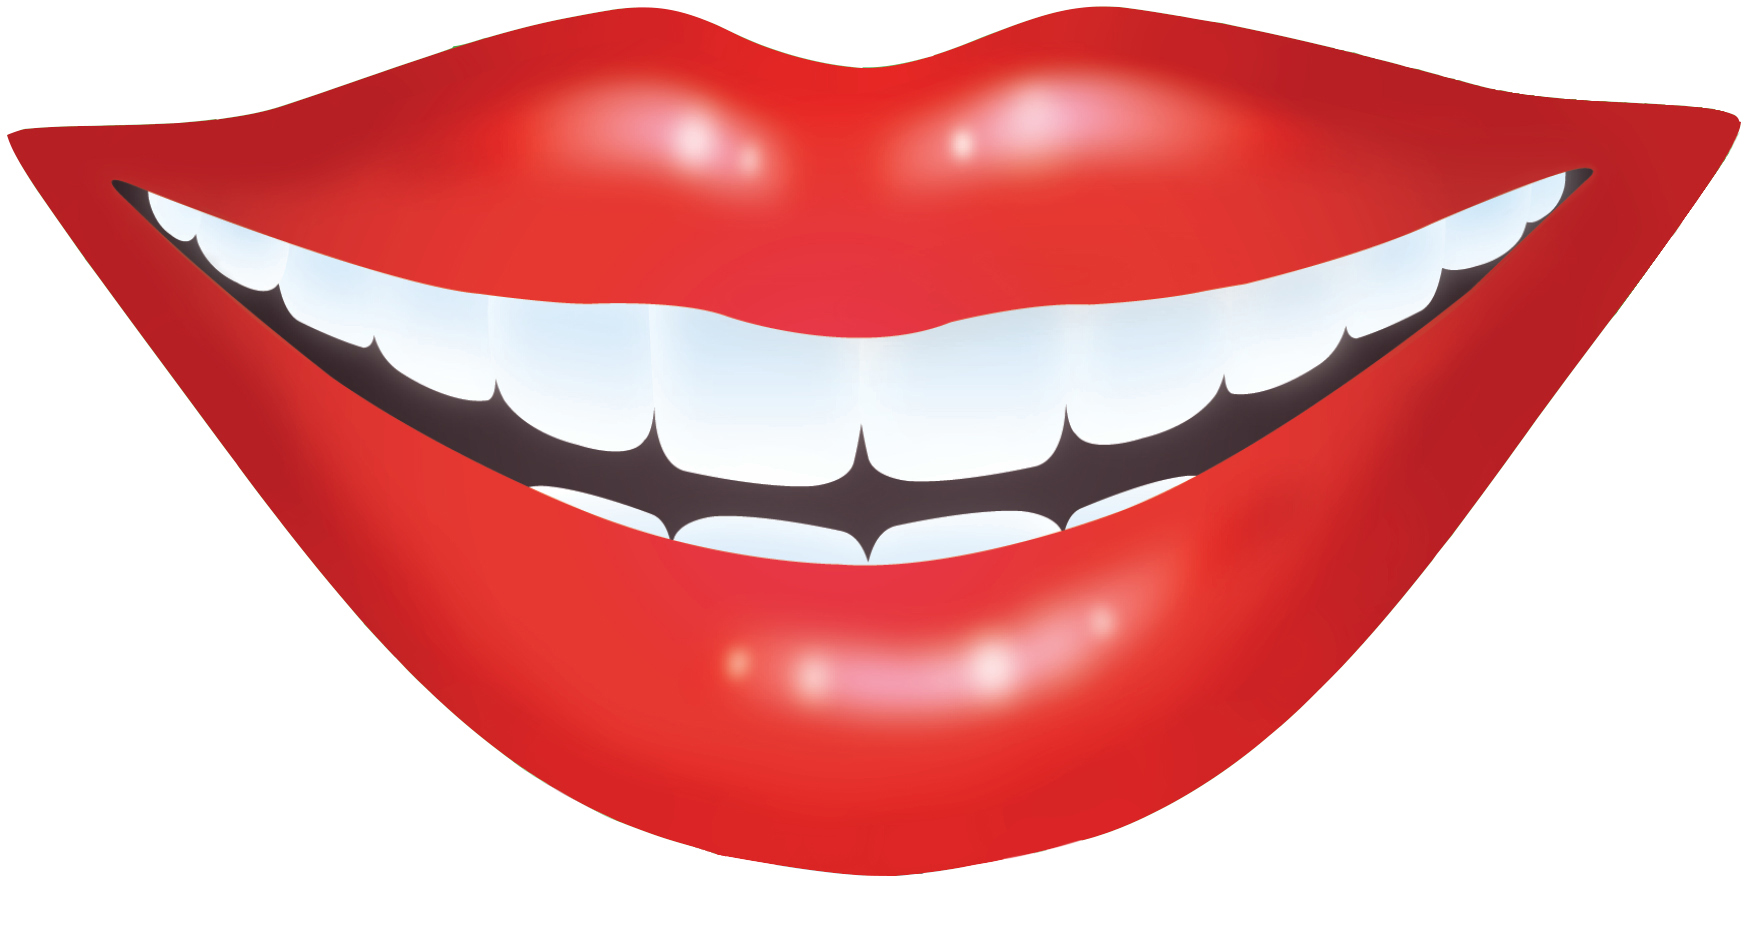 Lipstick clipart smile  Download Cute Mouth Mouth